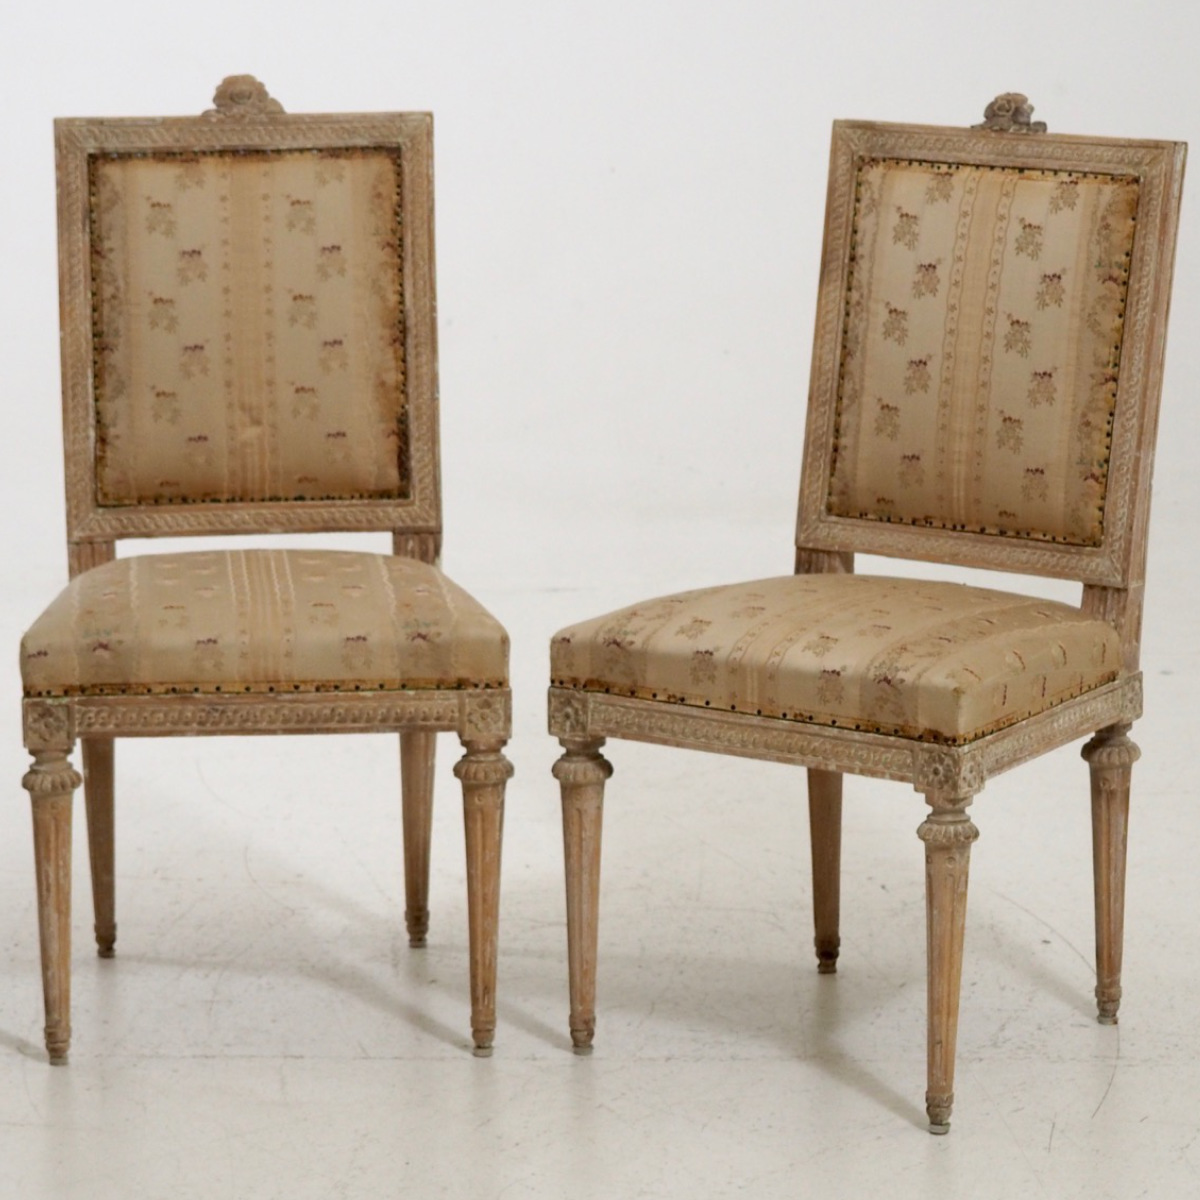 Pair of chairs.jpg